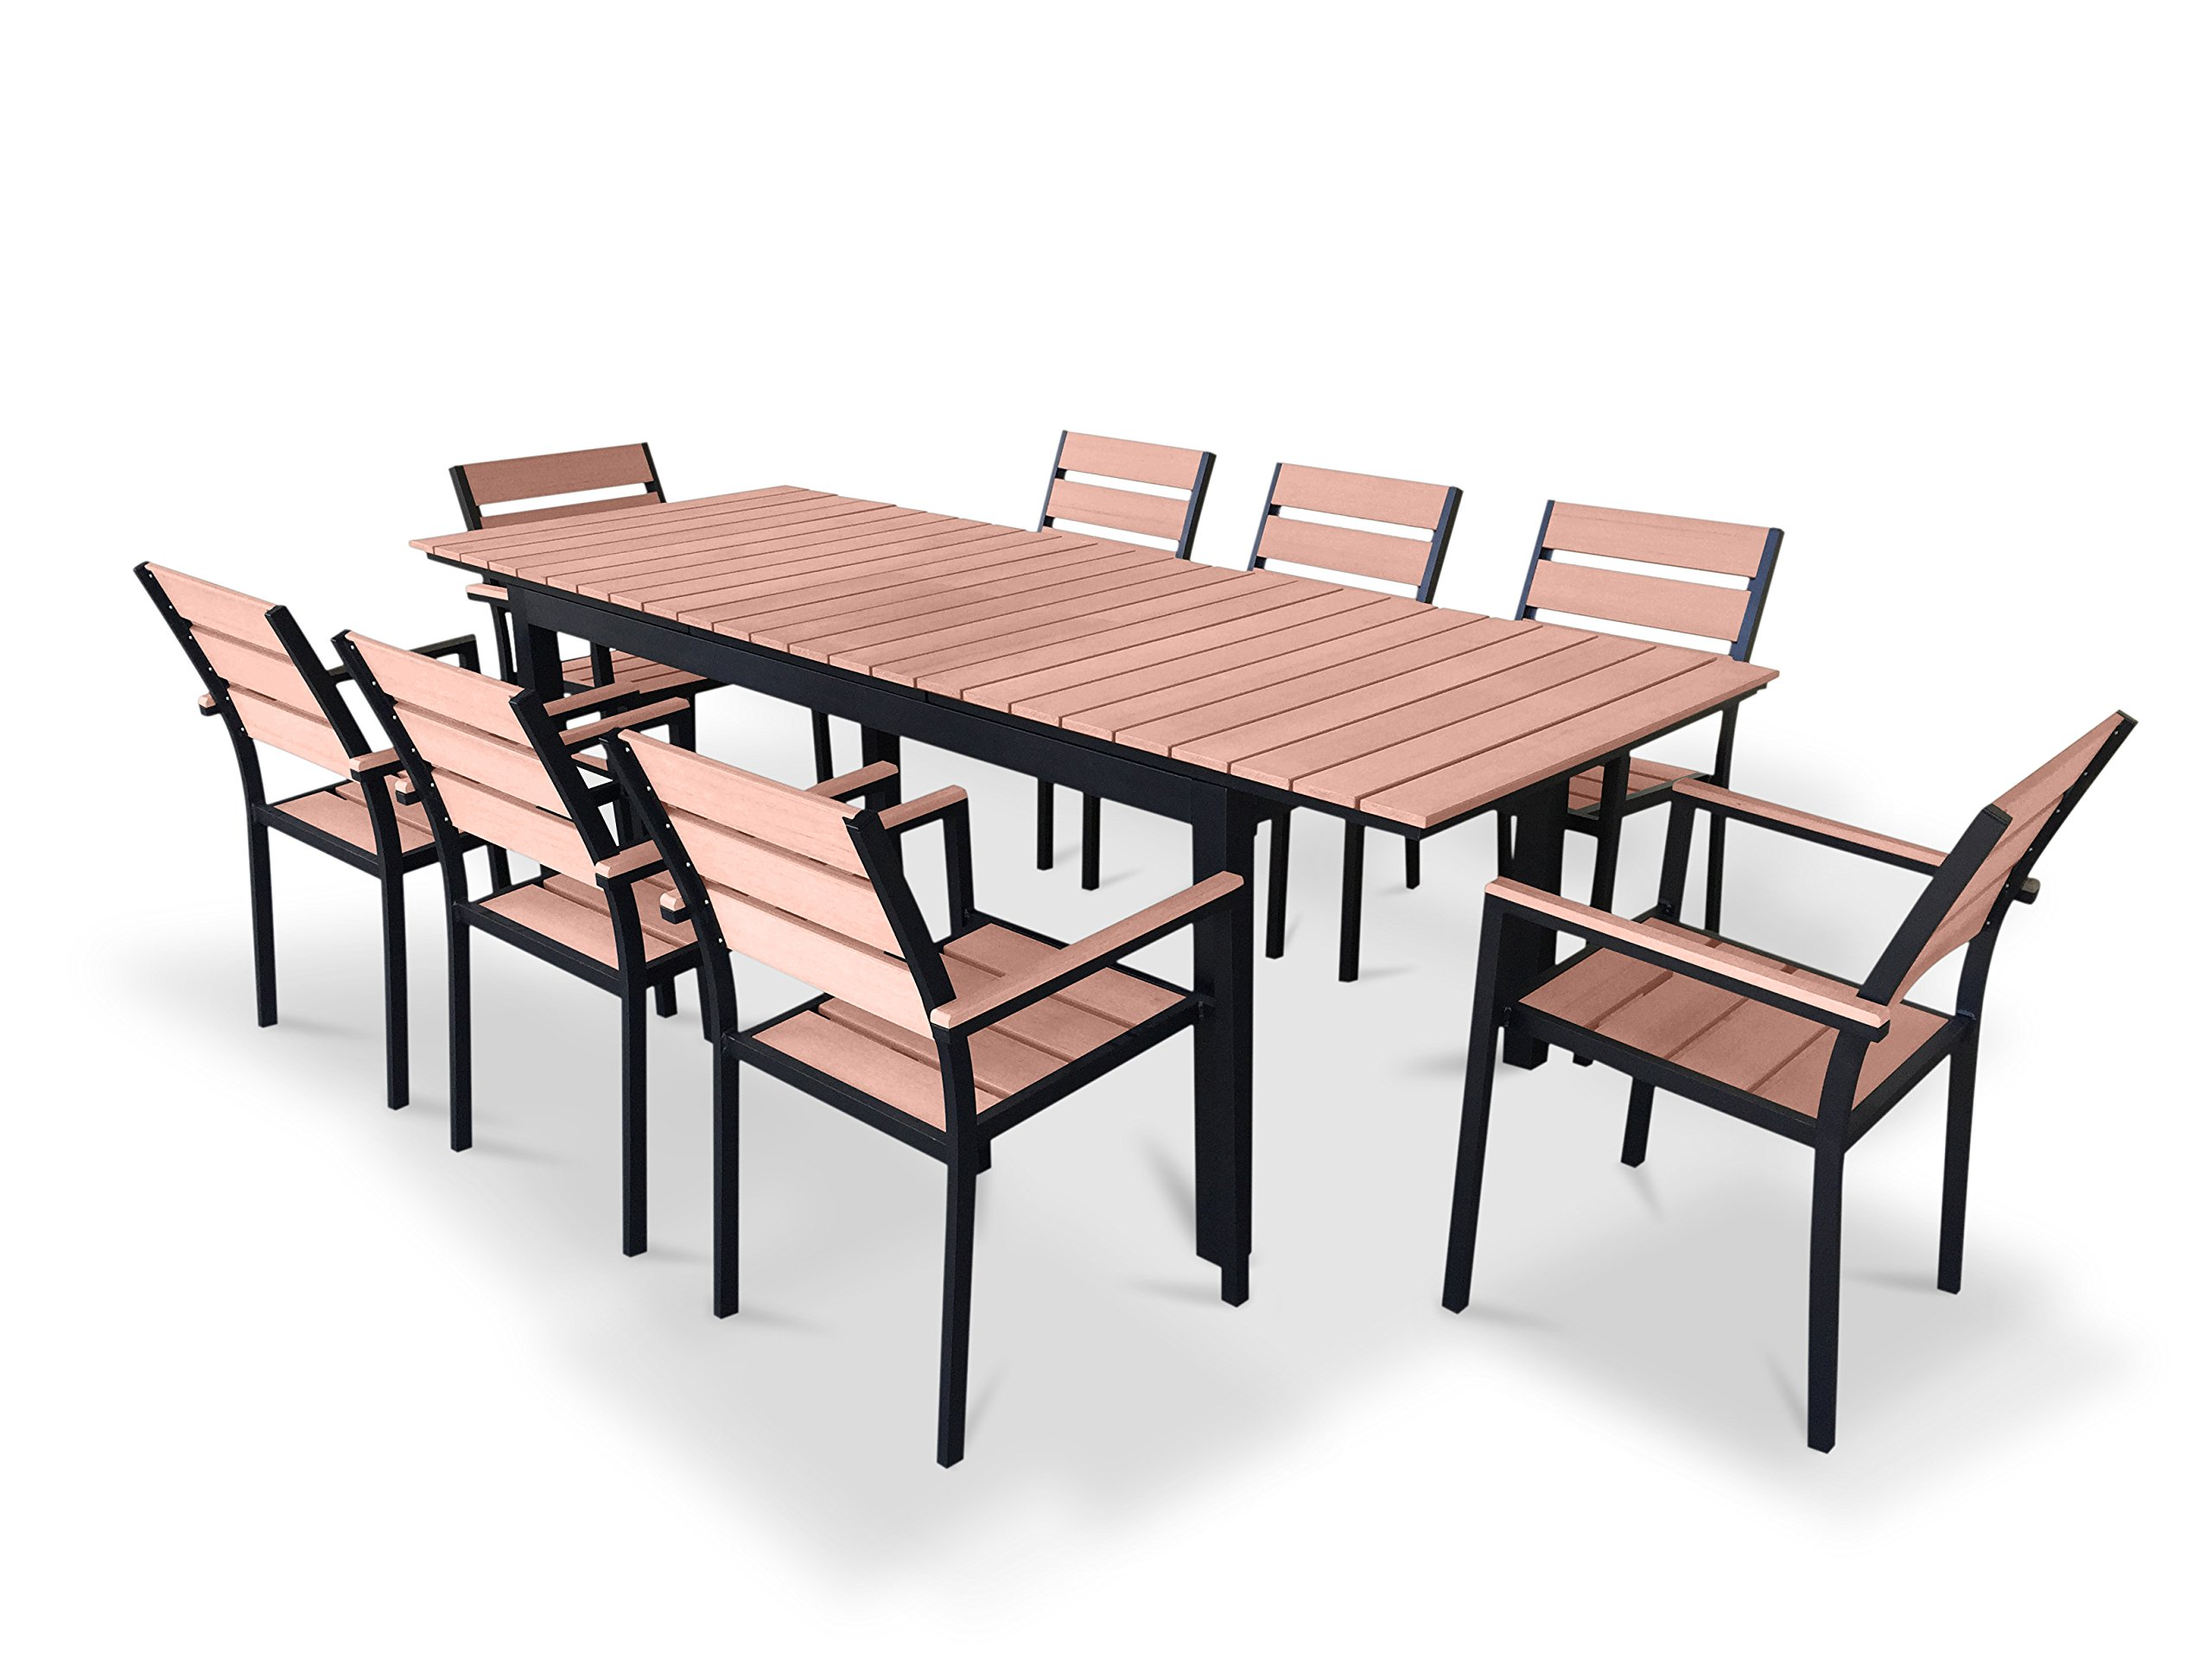 "UrbanFurnishing.net - 9 Piece Eco-Wood Extendable Outdoor Patio Dining Set - Sleek Ultra Modern Design with an Ingenius Hidden Leaf Extension Set includes 1 Extendable Table (70.8"" to 94.5"") and 8 Chairs (Stackable) Made from all-weather Eco-Wood Slats for table top and seating with Durable and Strong Powdercoated Aluminum Frame - patio-furniture, dining-sets-patio-funiture, patio - 811rl59HikL -"